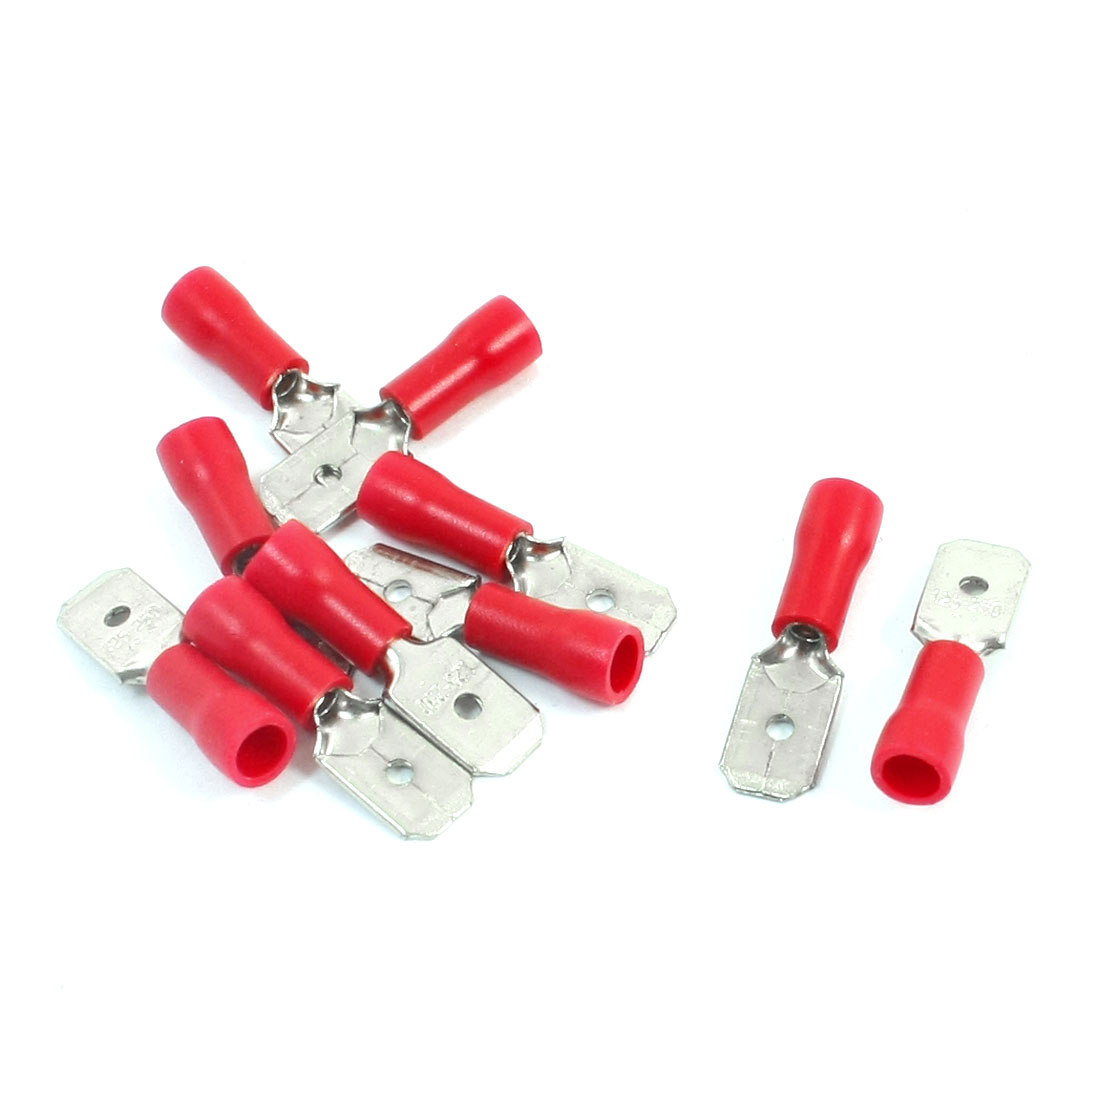 10Pcs 22-16 AWG MDD1-250 Red PVC Sleeve Insulated Cable Terminals Crimp